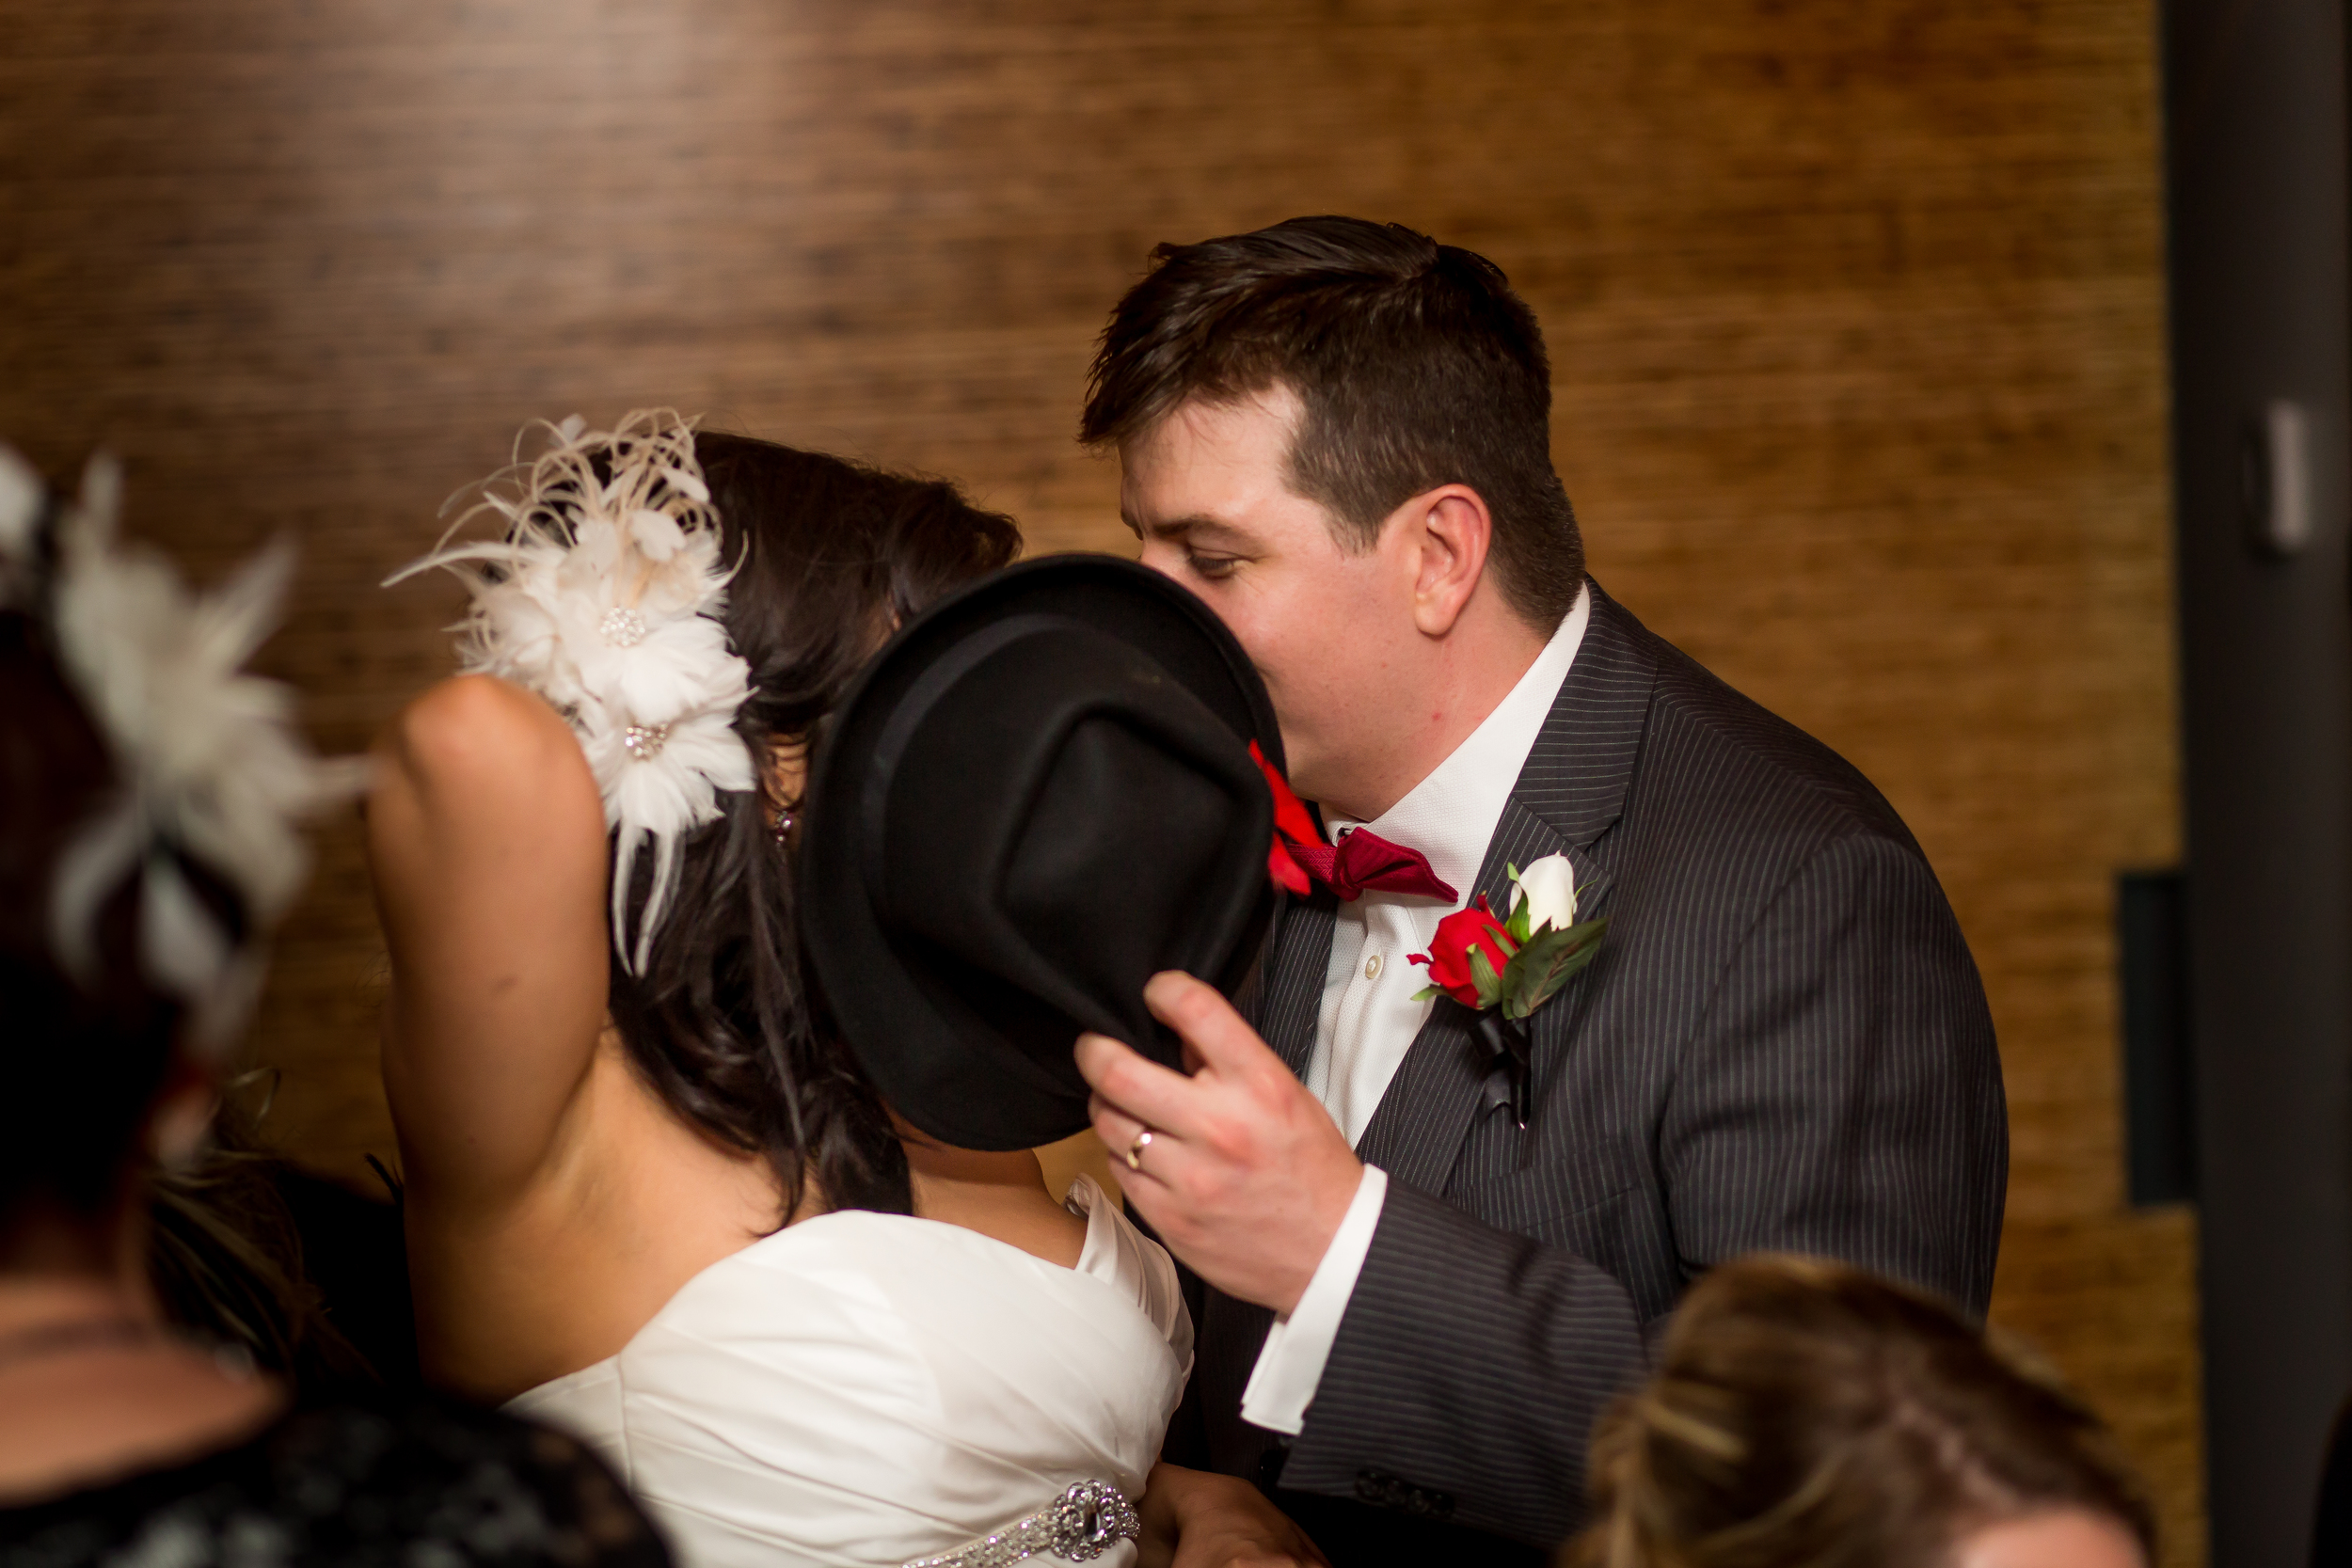 The bride and groom sneaking a kiss at their wedding reception